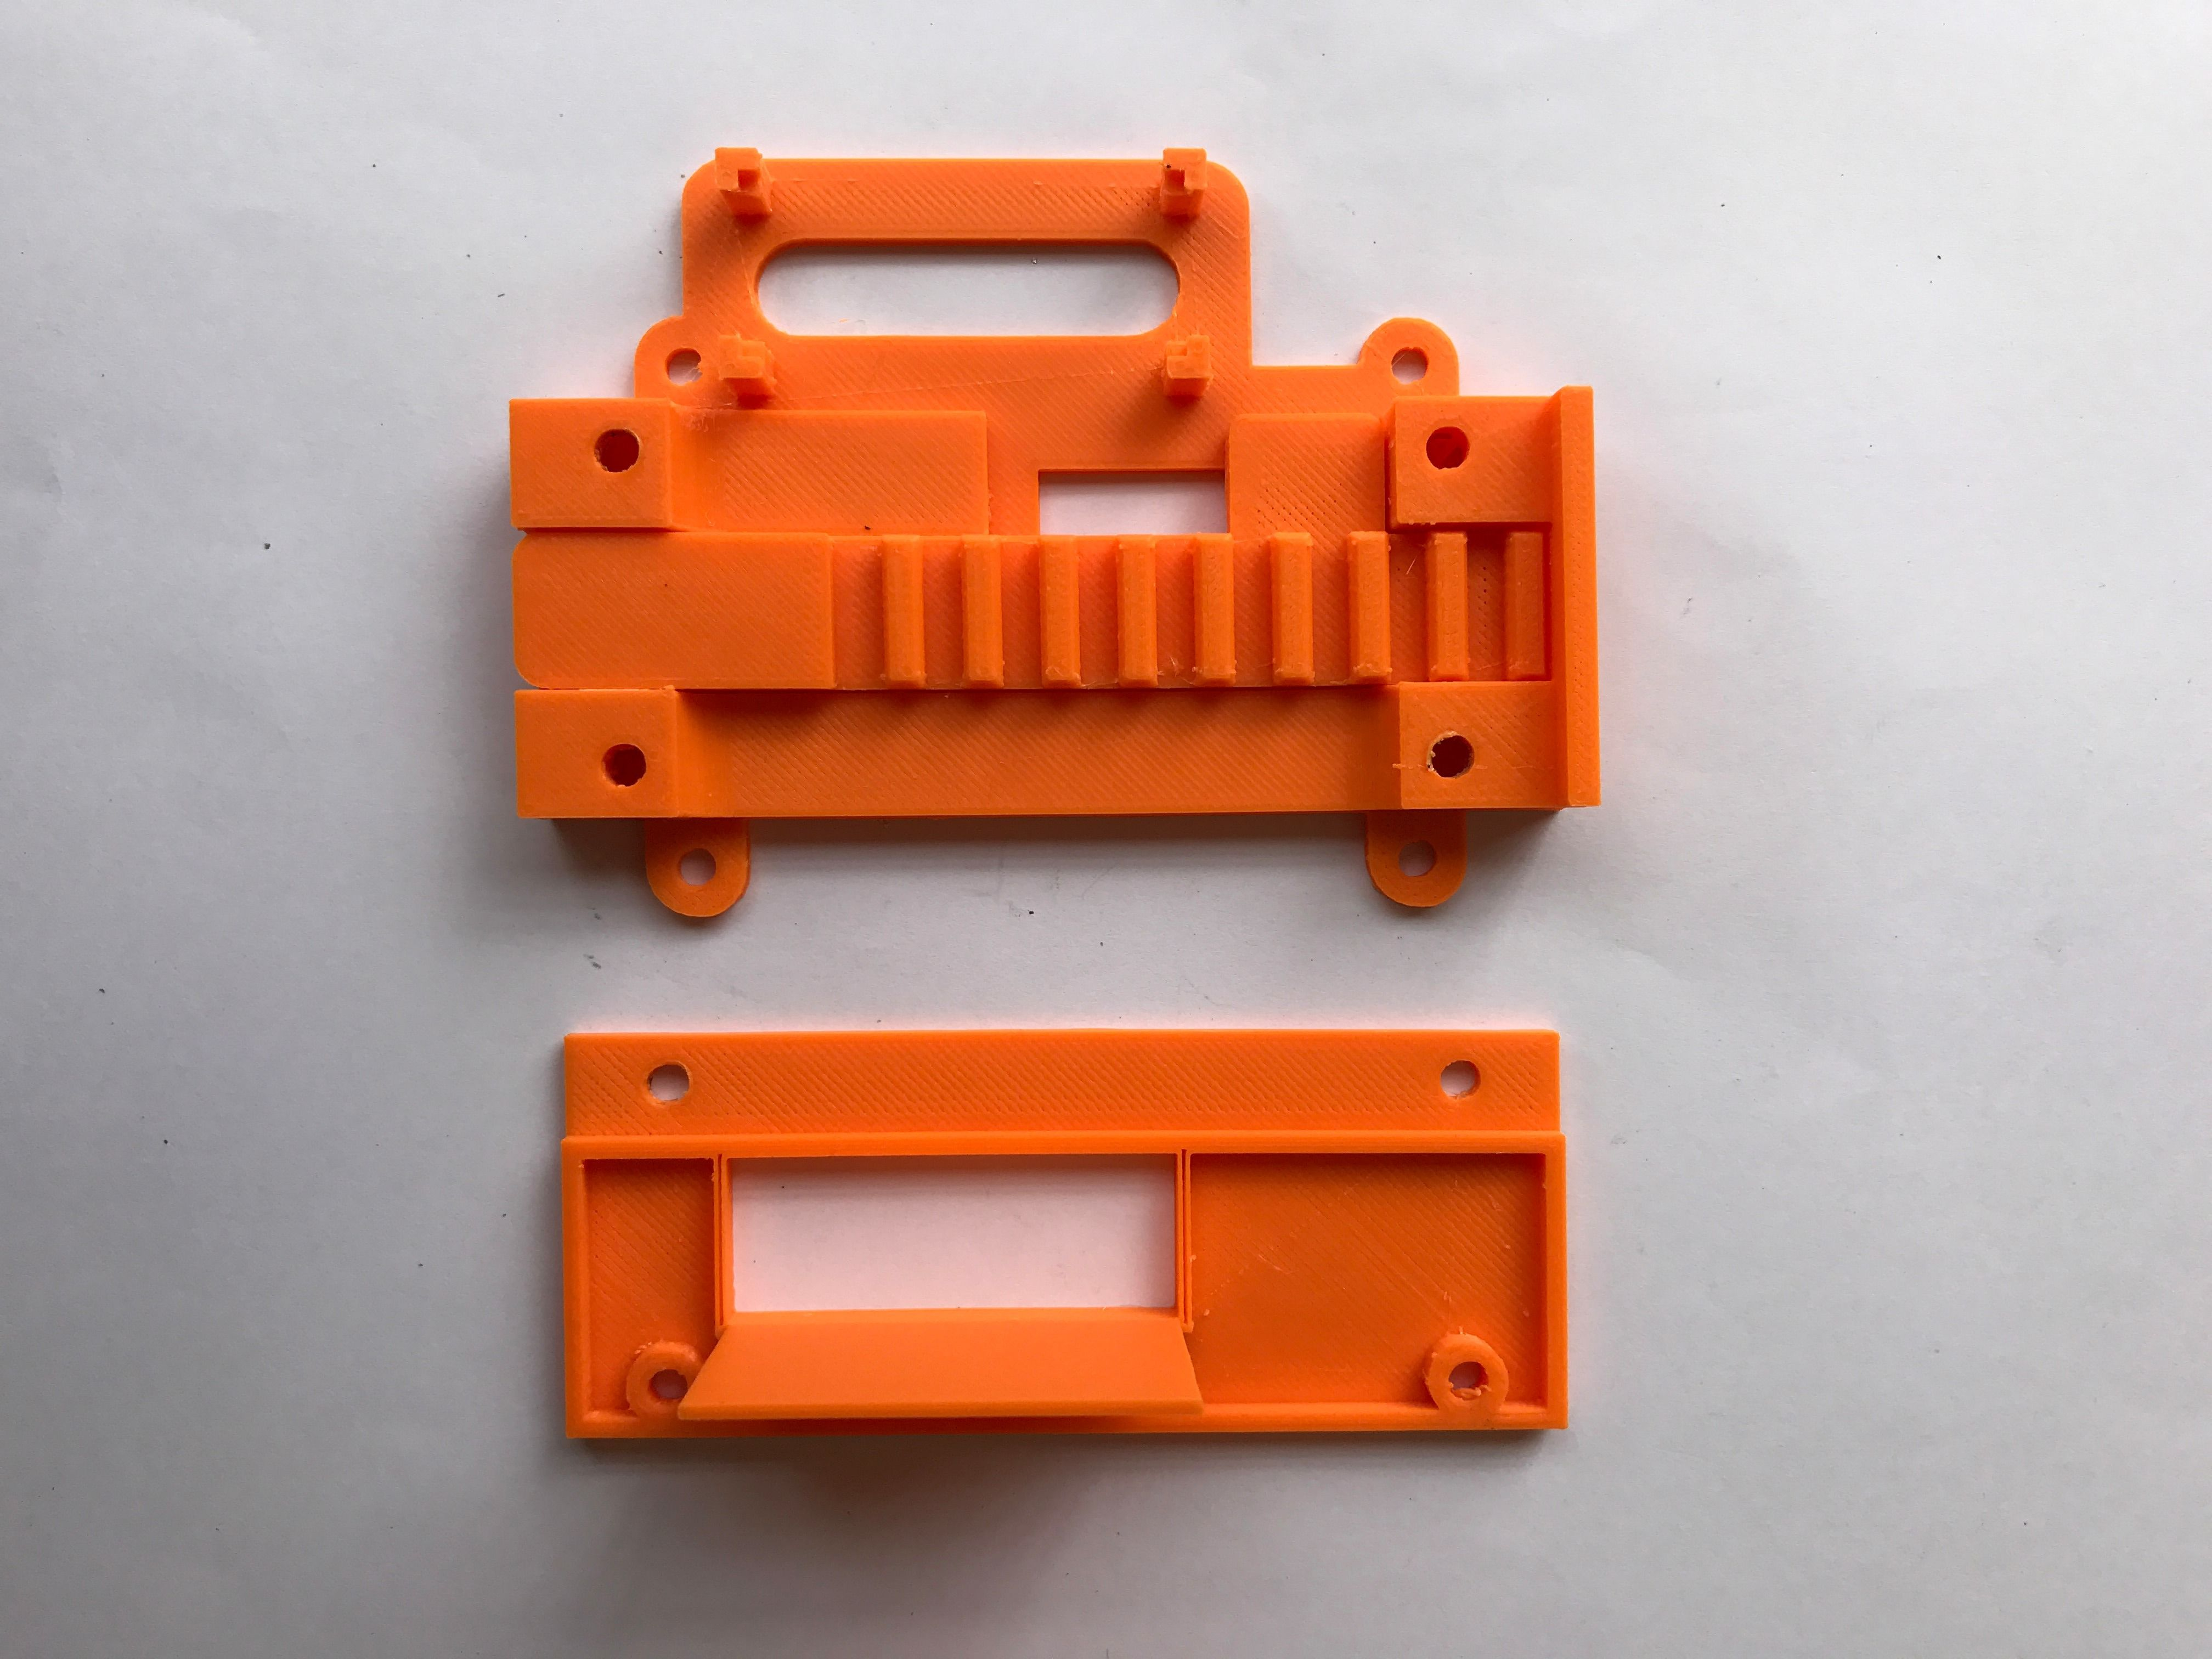 Picture of Assembling 3D Printed Parts